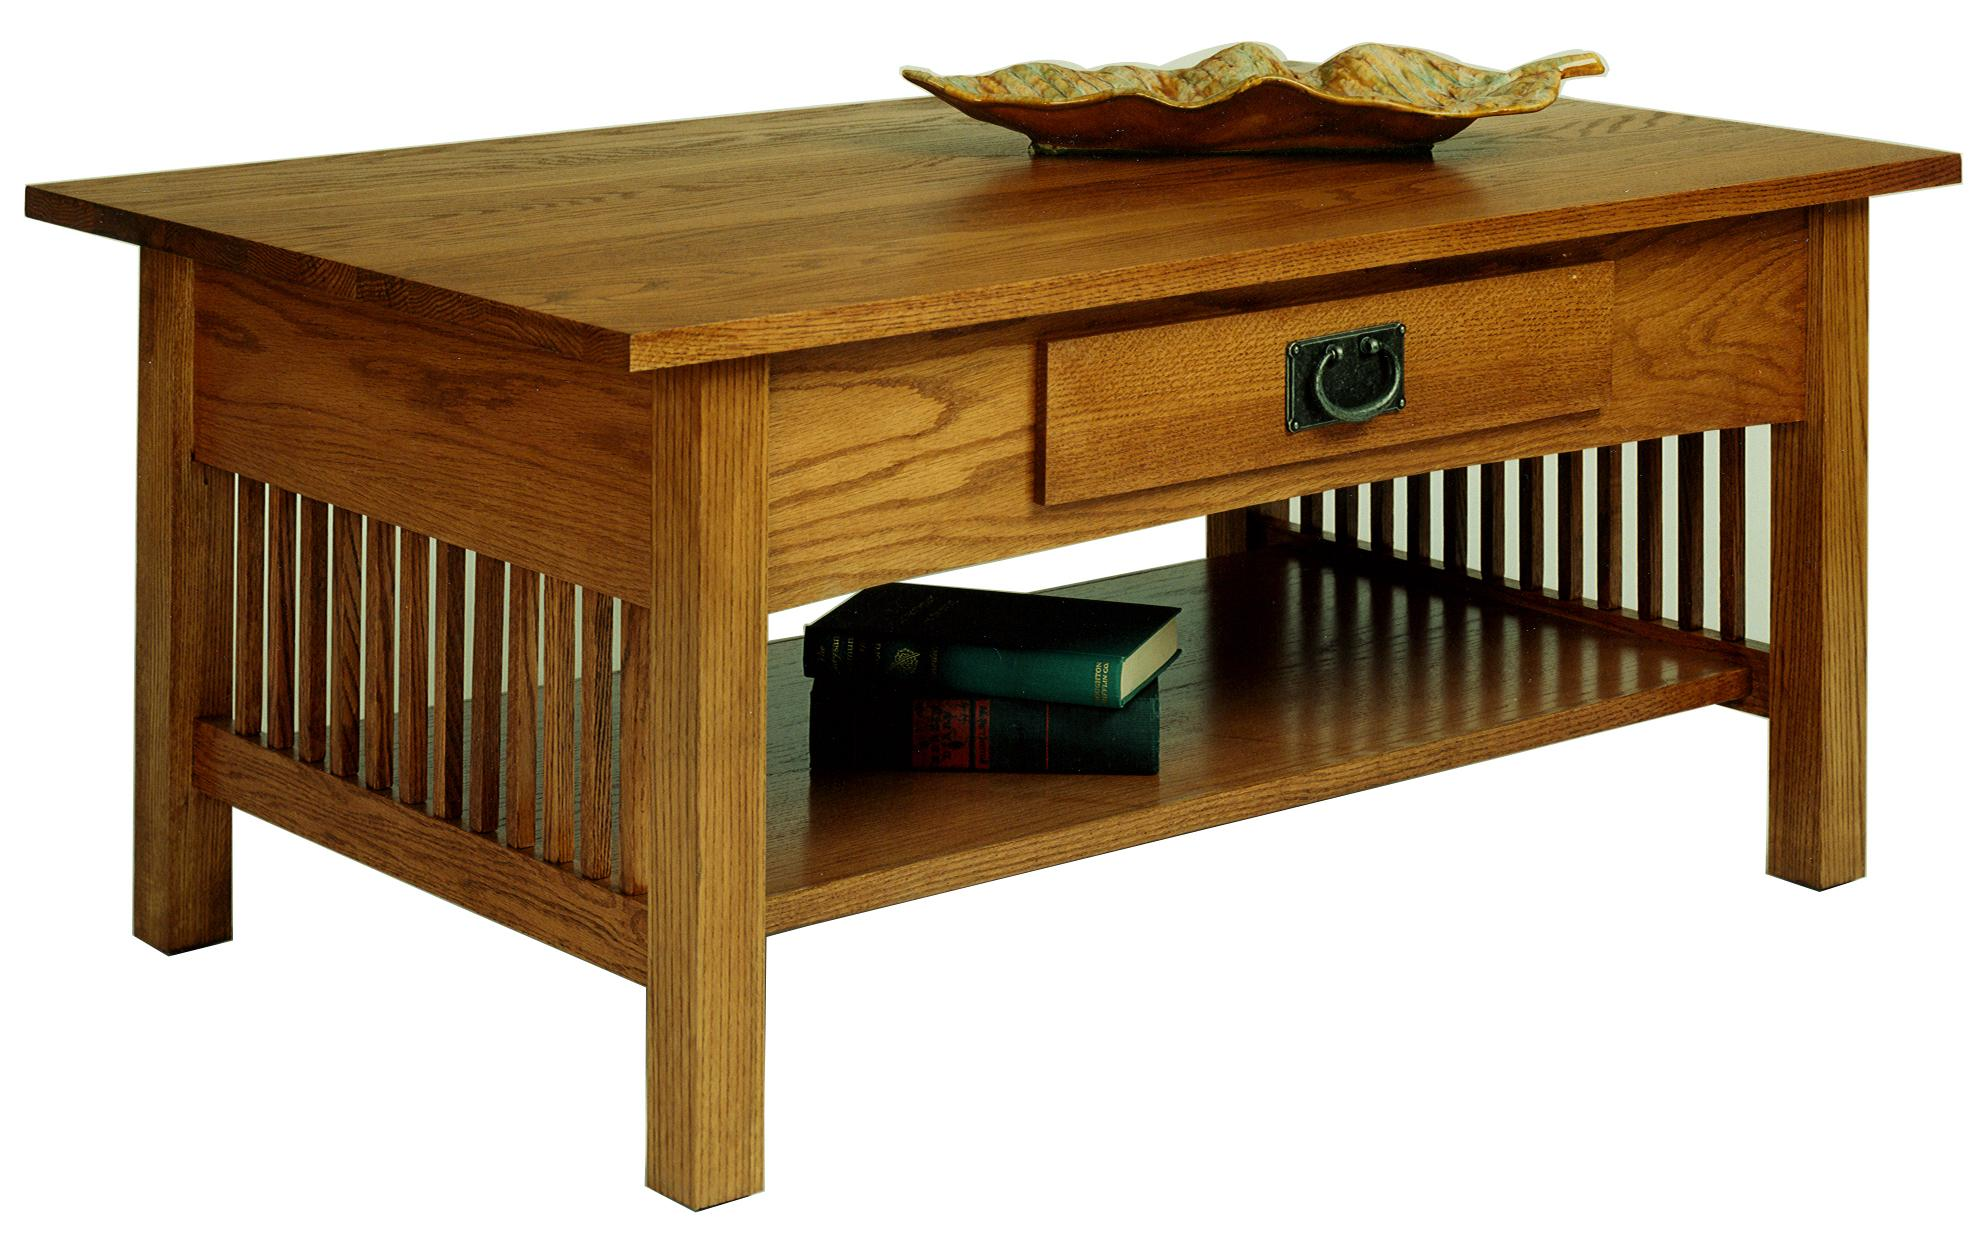 Workbench Classics Cocktail Table with Drawer and Shelf by AA Laun at Mueller Furniture